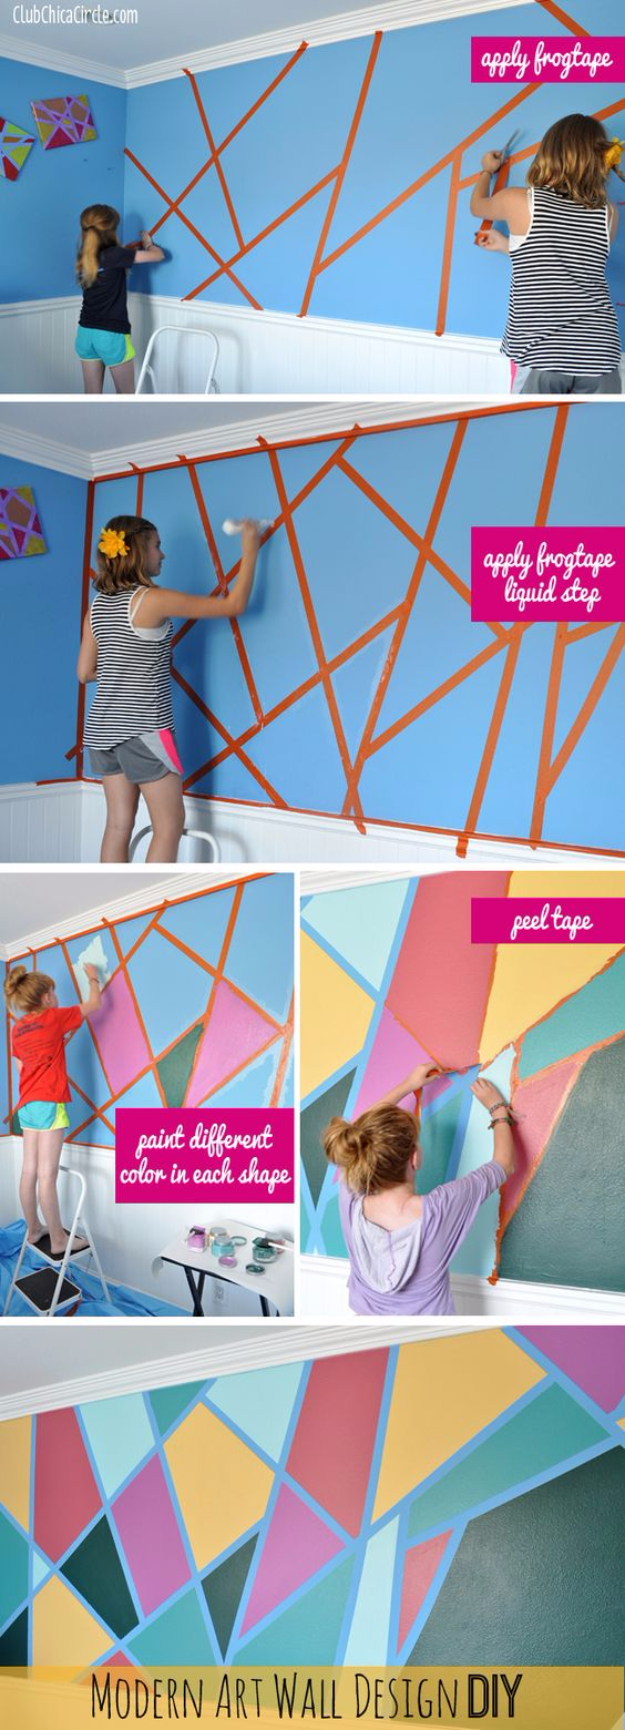 34 cool ways to paint walls diy projects for teens - Wall painting ideas for bedroom ...